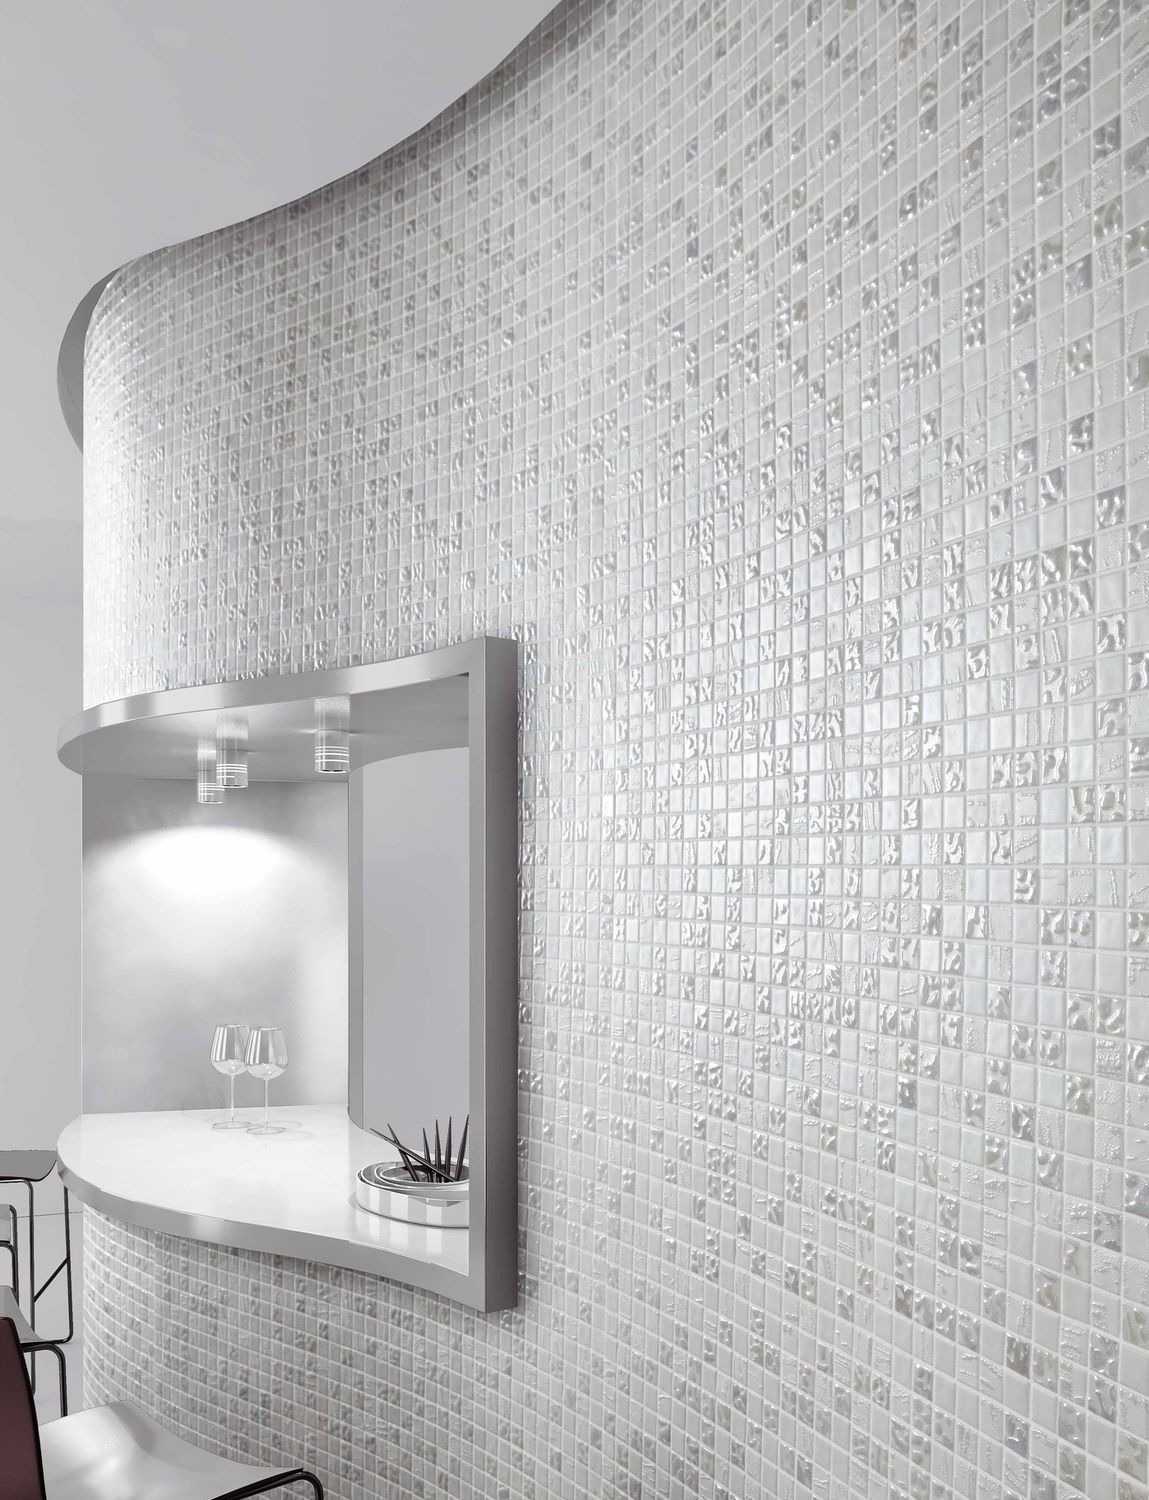 Indoor mosaic tile / wall / glass / white - TRENDY - Mosavit